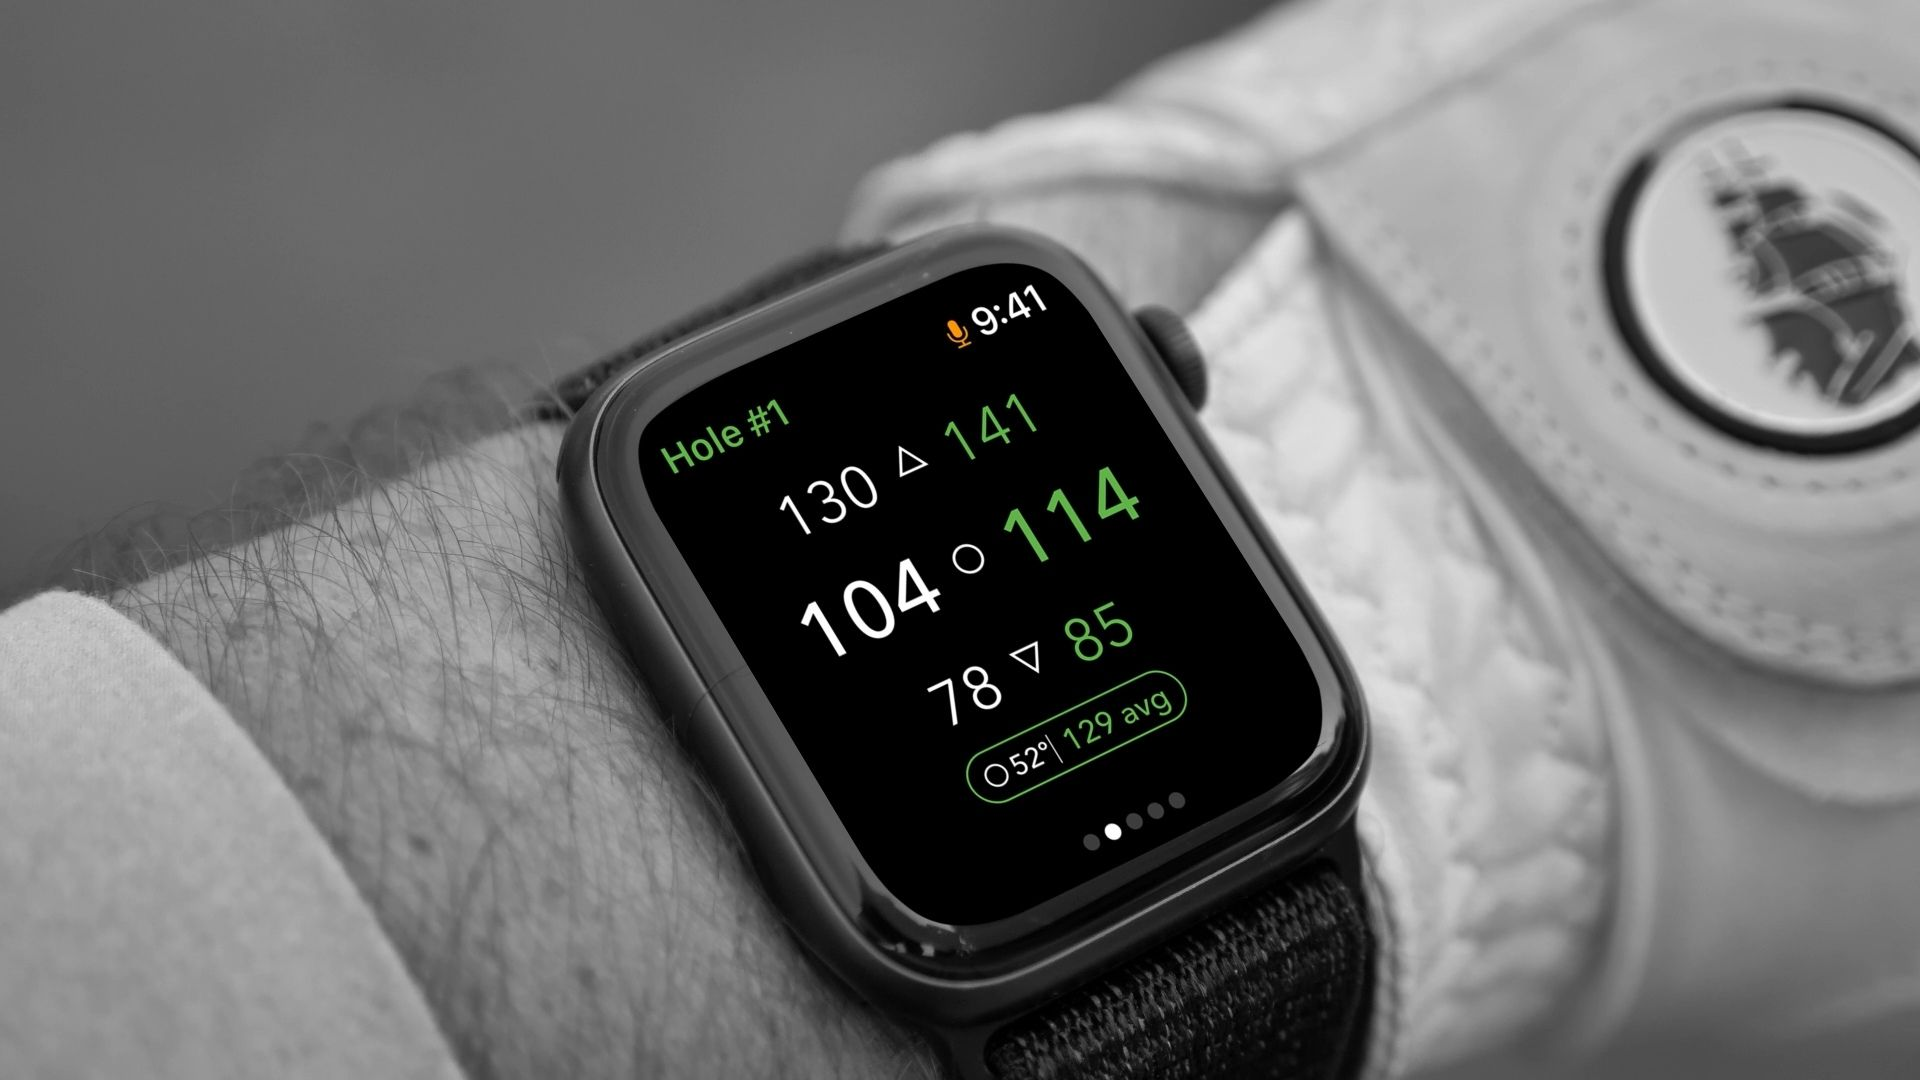 All in the Flick of the Wrist: New Caddie Apple Watch App